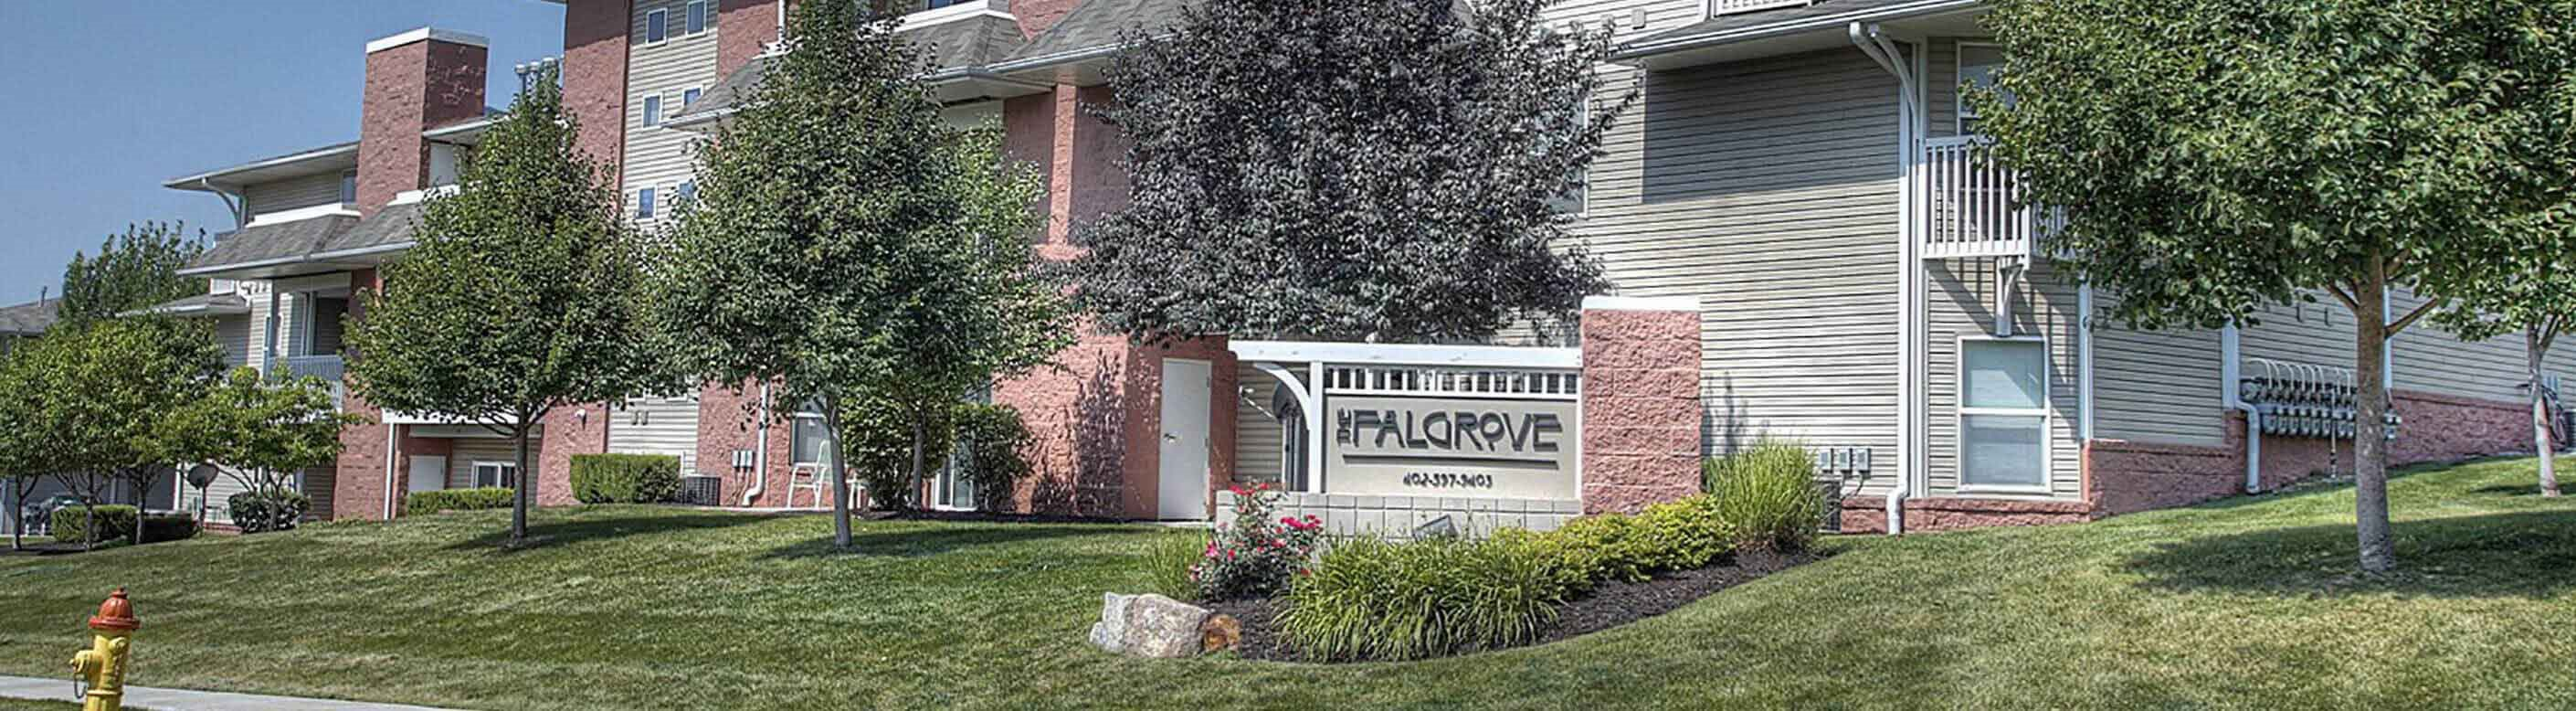 Comfortable Apartments with Thoughtful Amenities, at Falgrove, The, Omaha, NE 68137